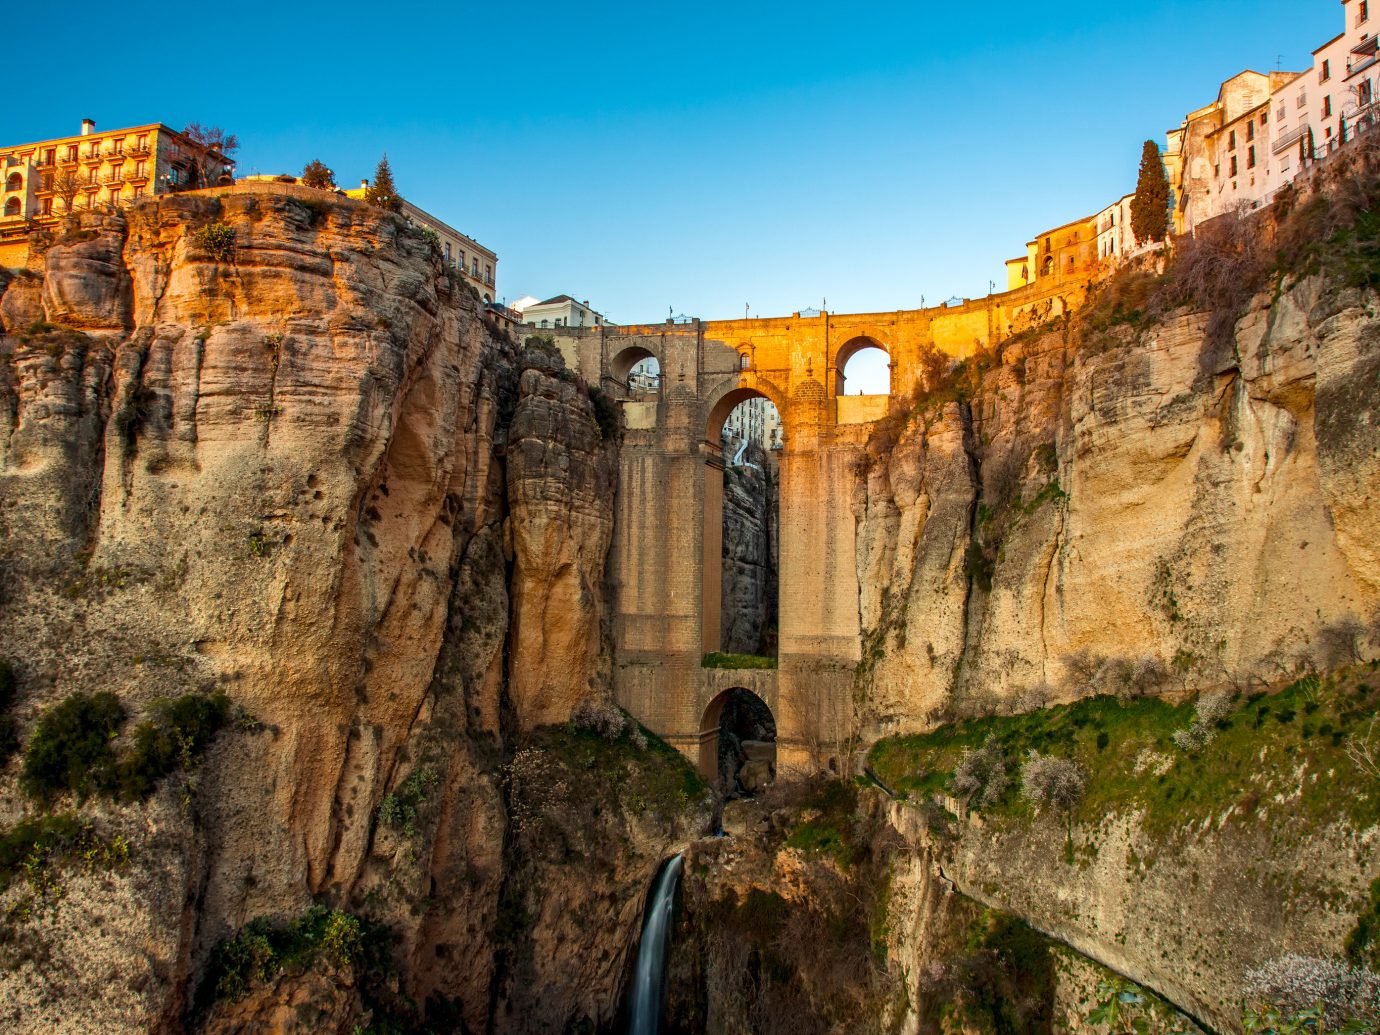 europe Spain Trip Ideas sky historic site landmark fortification Ruins escarpment ancient history rock terrain national park formation tourist attraction cliff history archaeological site geology tourism tree building mountain landscape unesco world heritage site middle ages facade